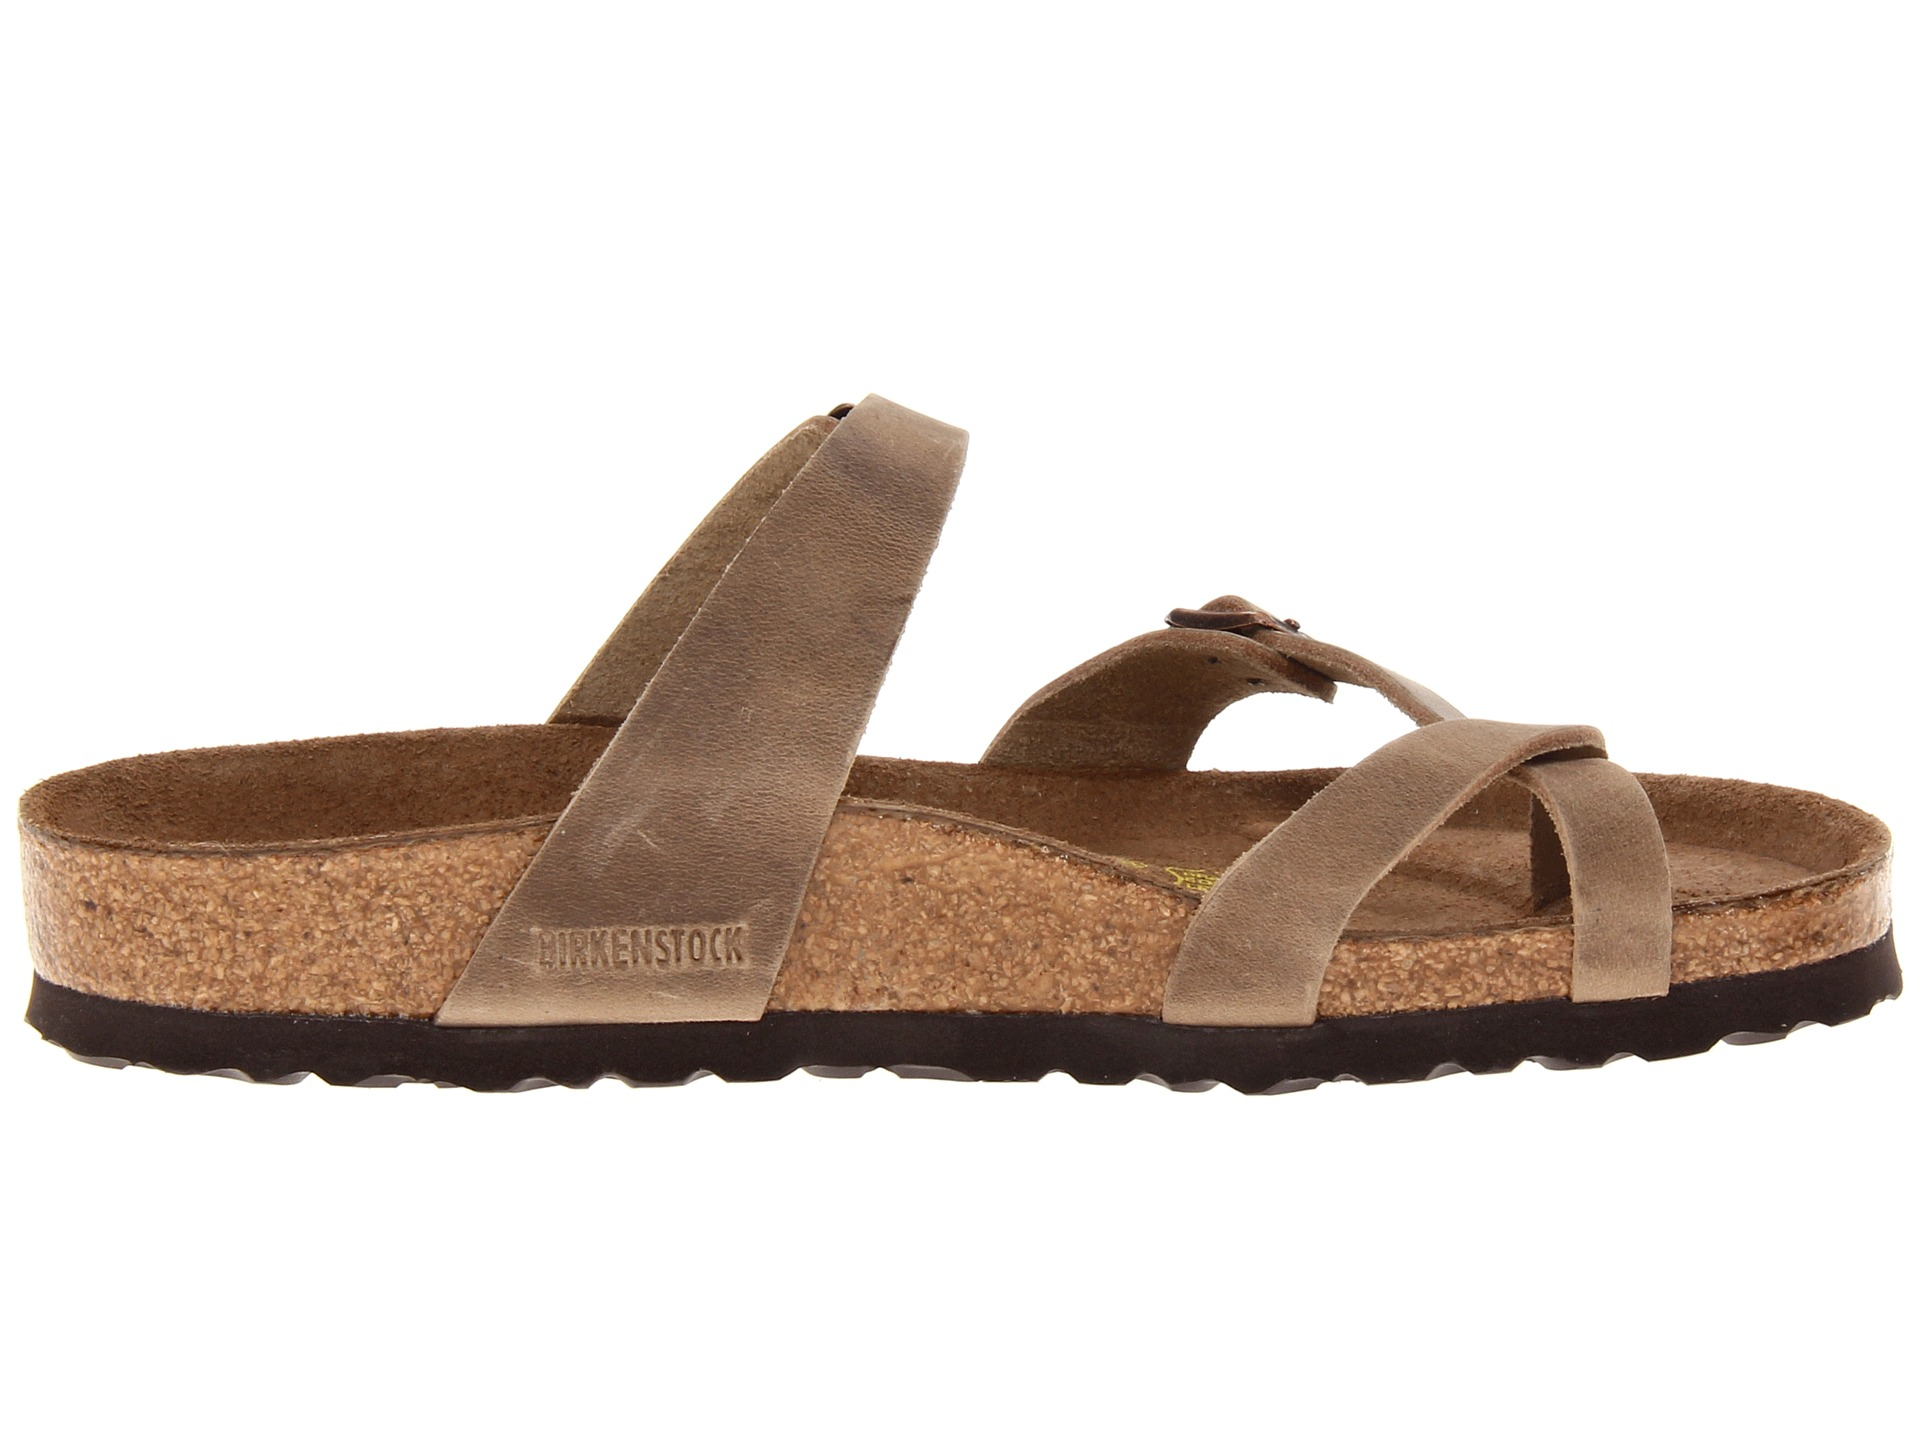 Cheap Birkenstock Mayari, Cheap Birkenstock Mayari Sandals Sale Outlet 2017